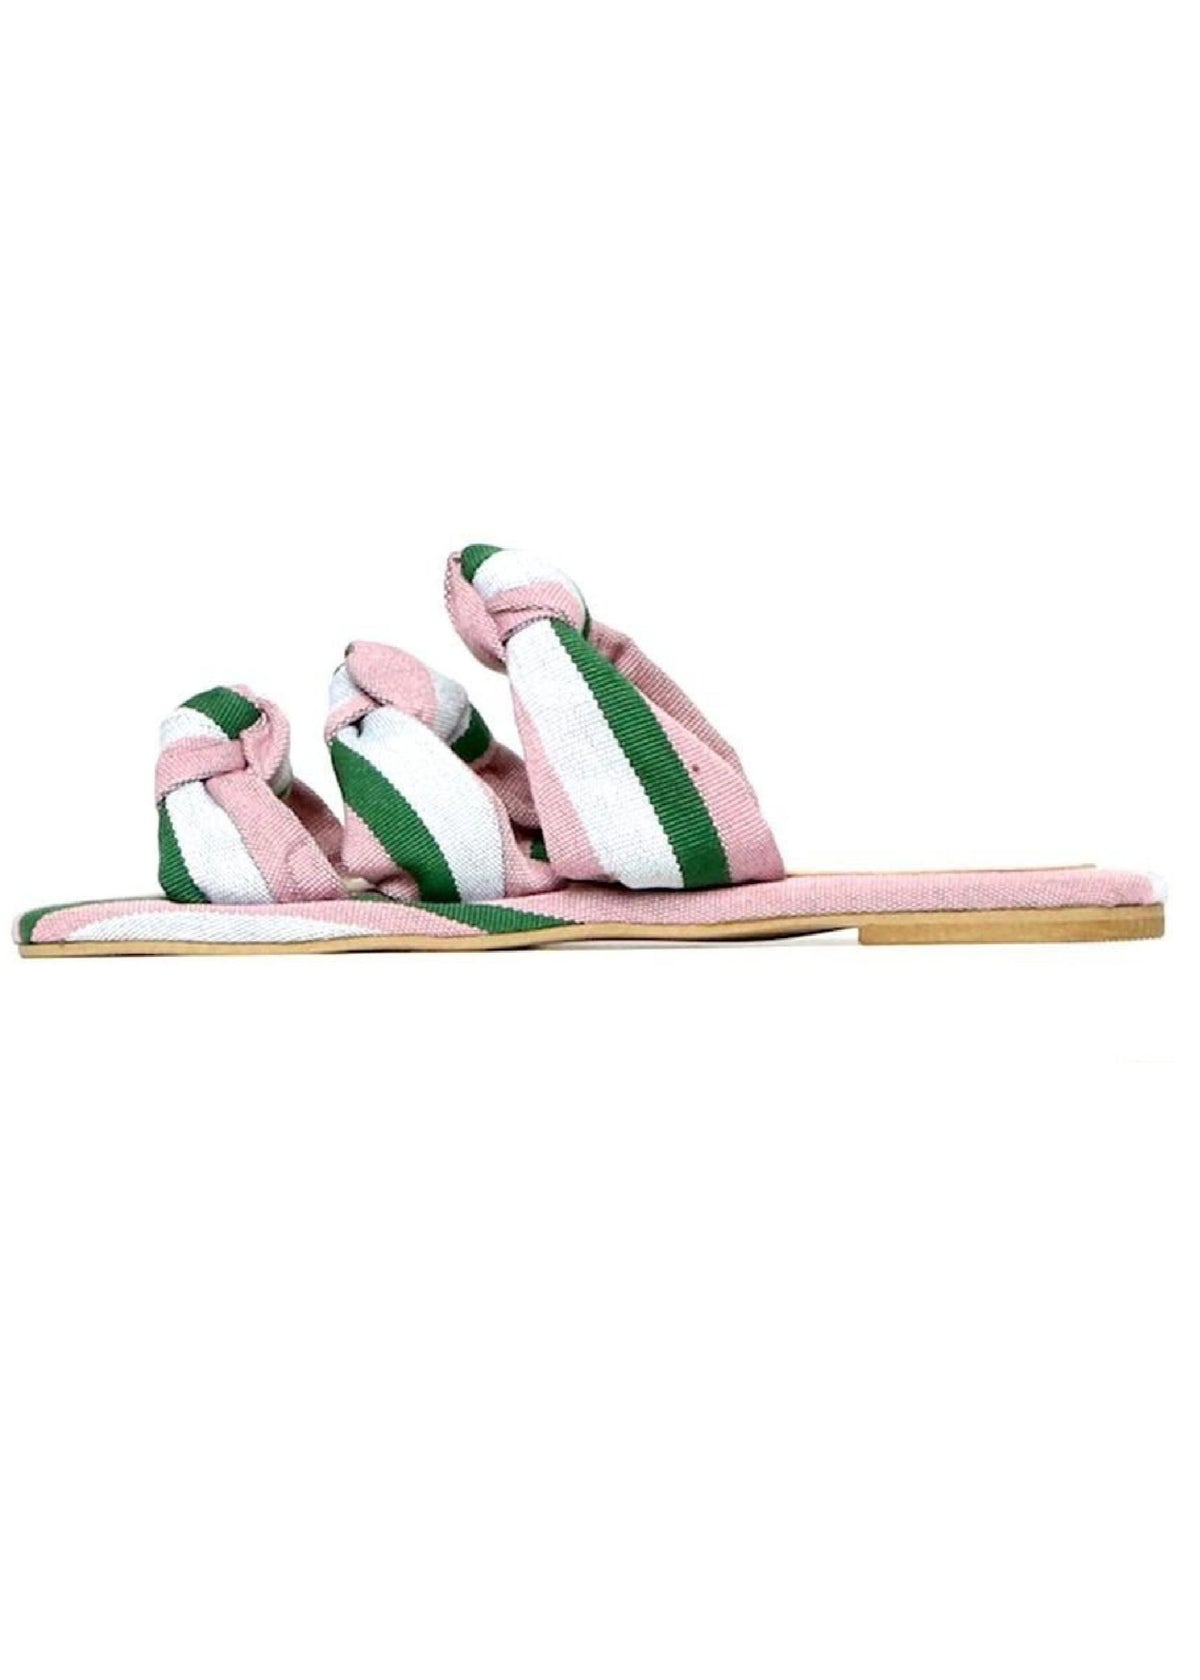 Shekudo green and pink woven slippers